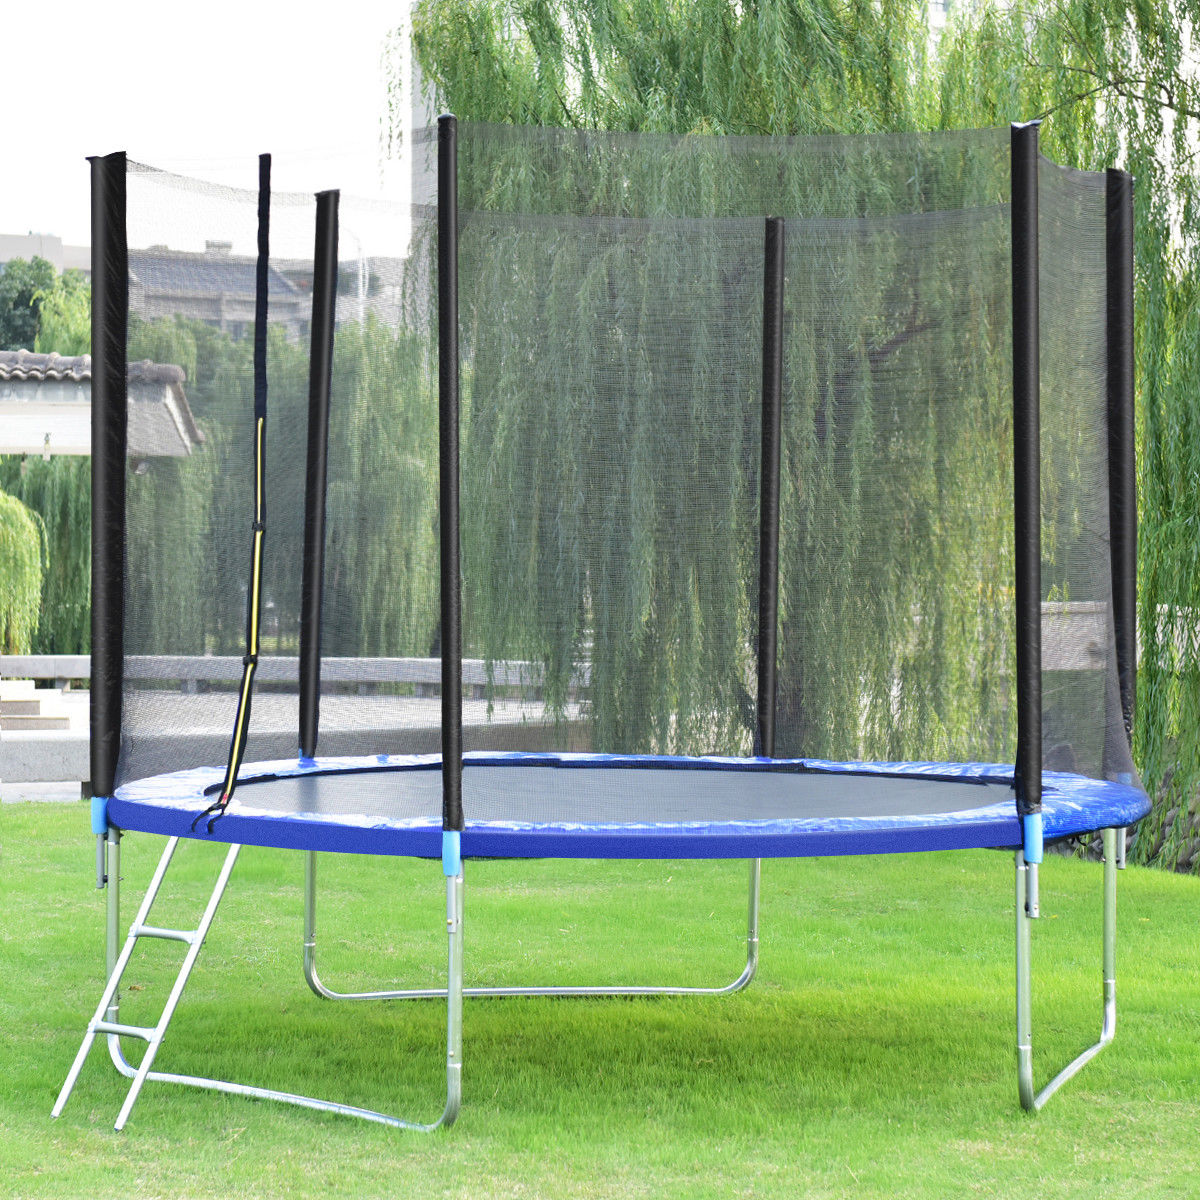 Gymax 10 FT Trampoline Combo Bounce Jump Safety Enclosure Net W/Spring Pad Ladder - image 4 of 10